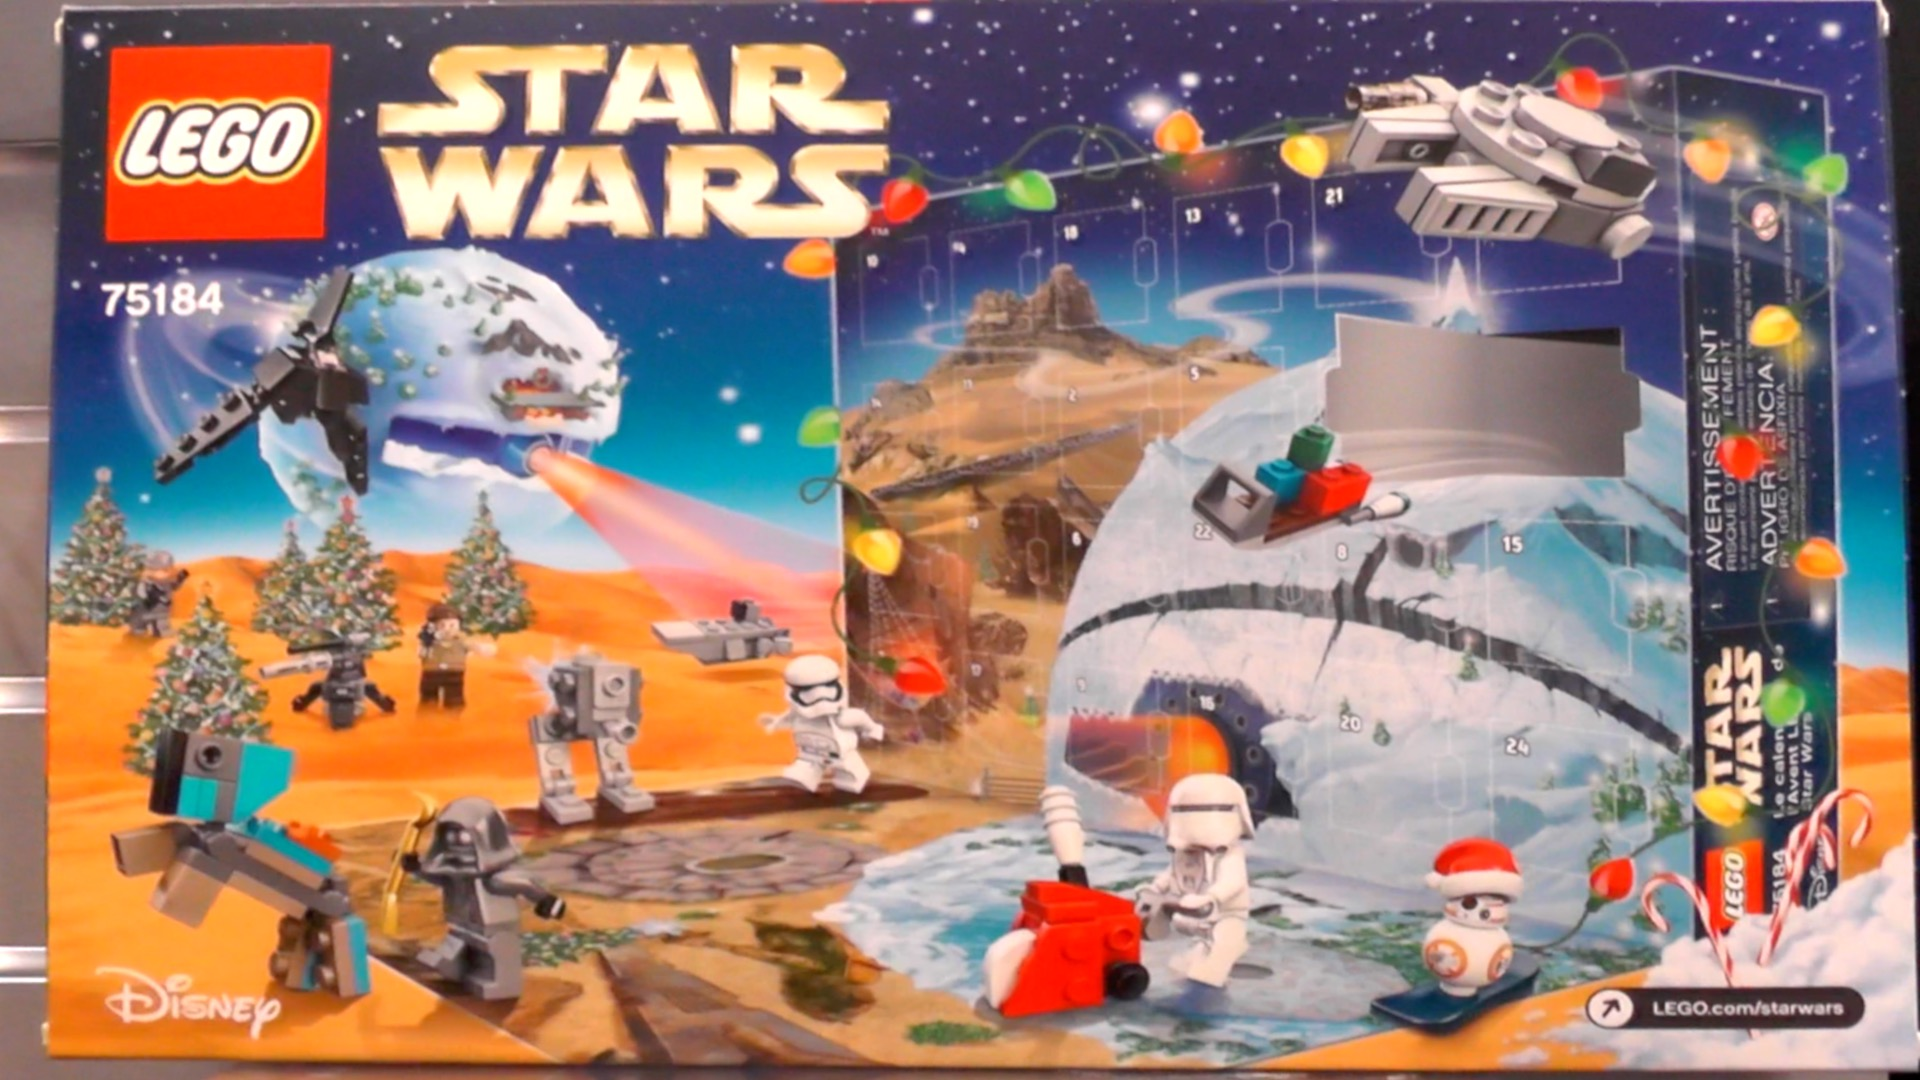 Lego Star Wars Advent Calendar for 2017 revealed